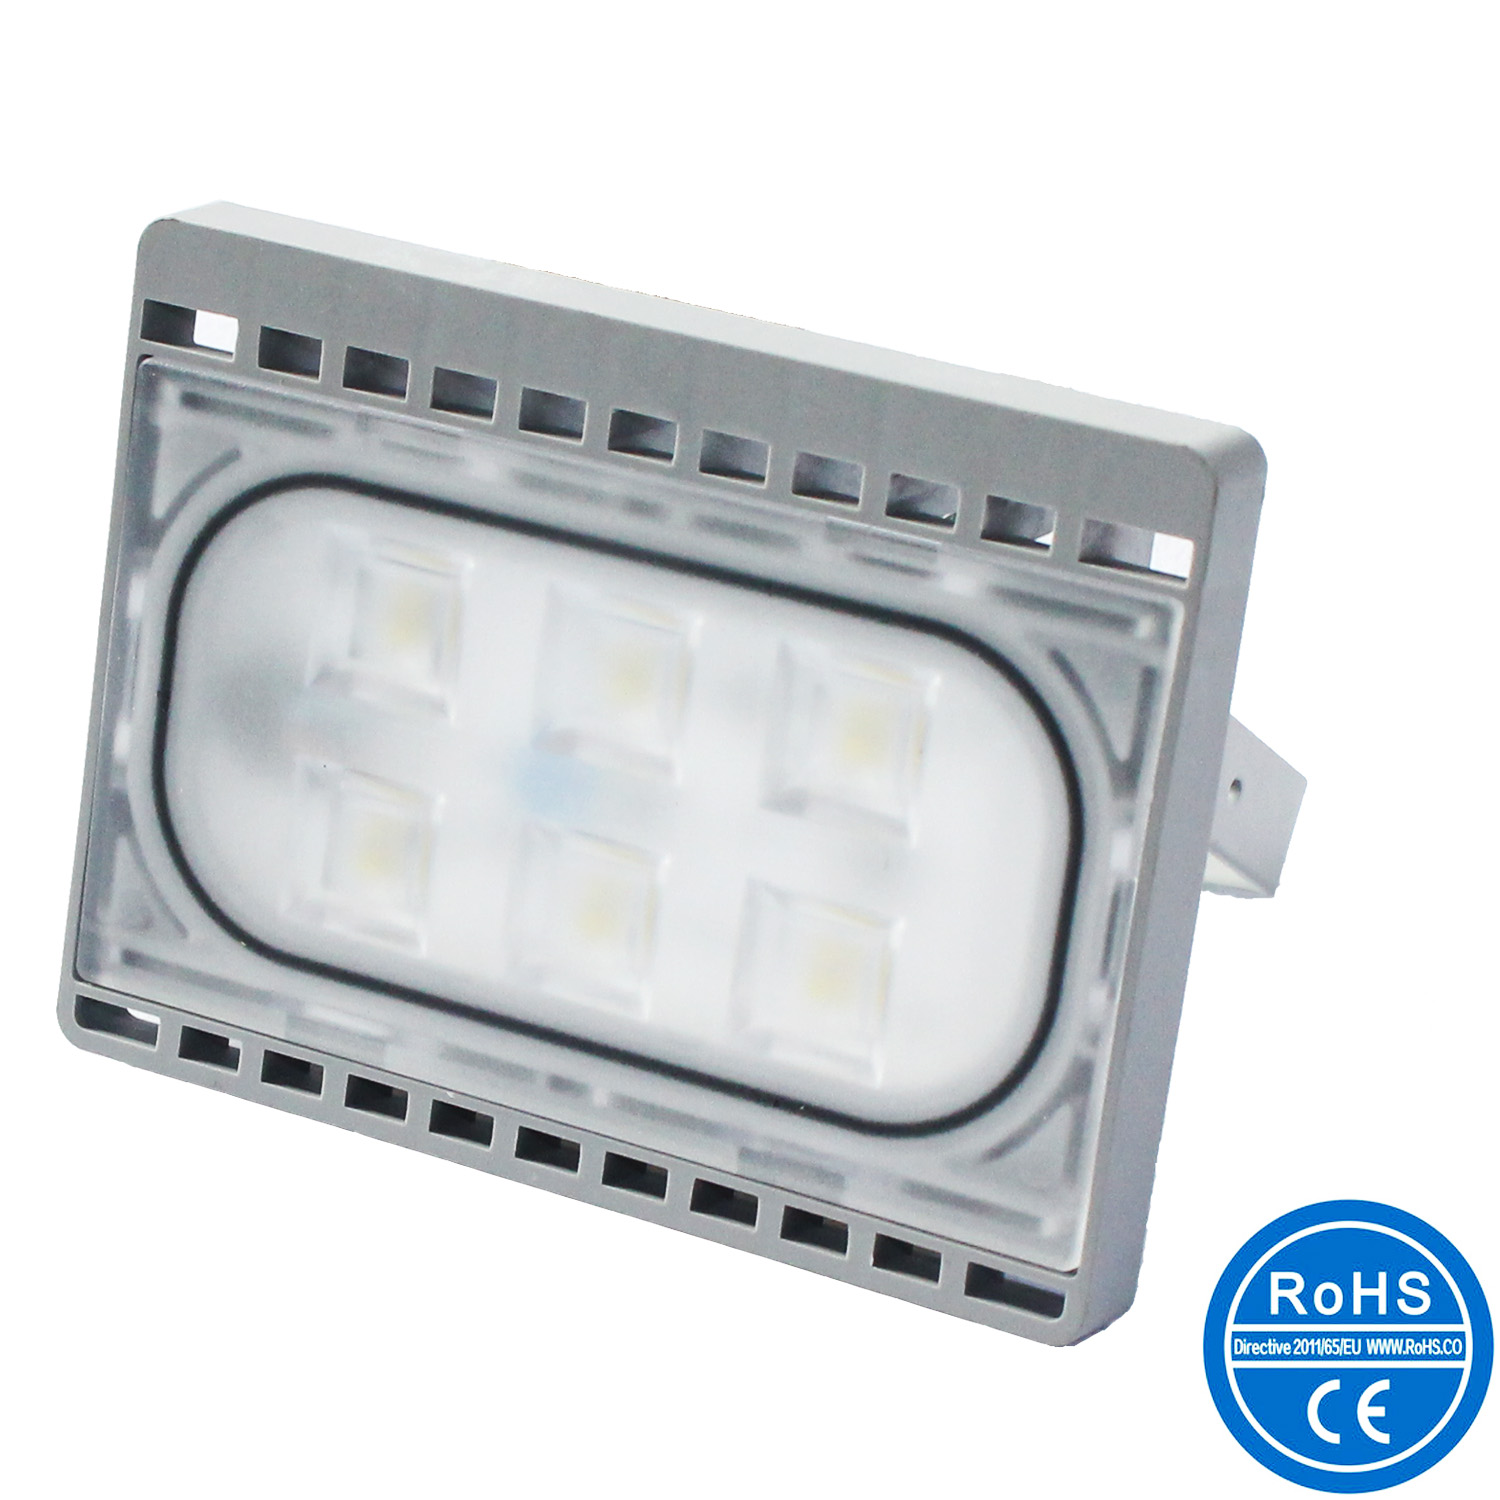 Picture of Radar sensor LED flood light ZPFLAP-002